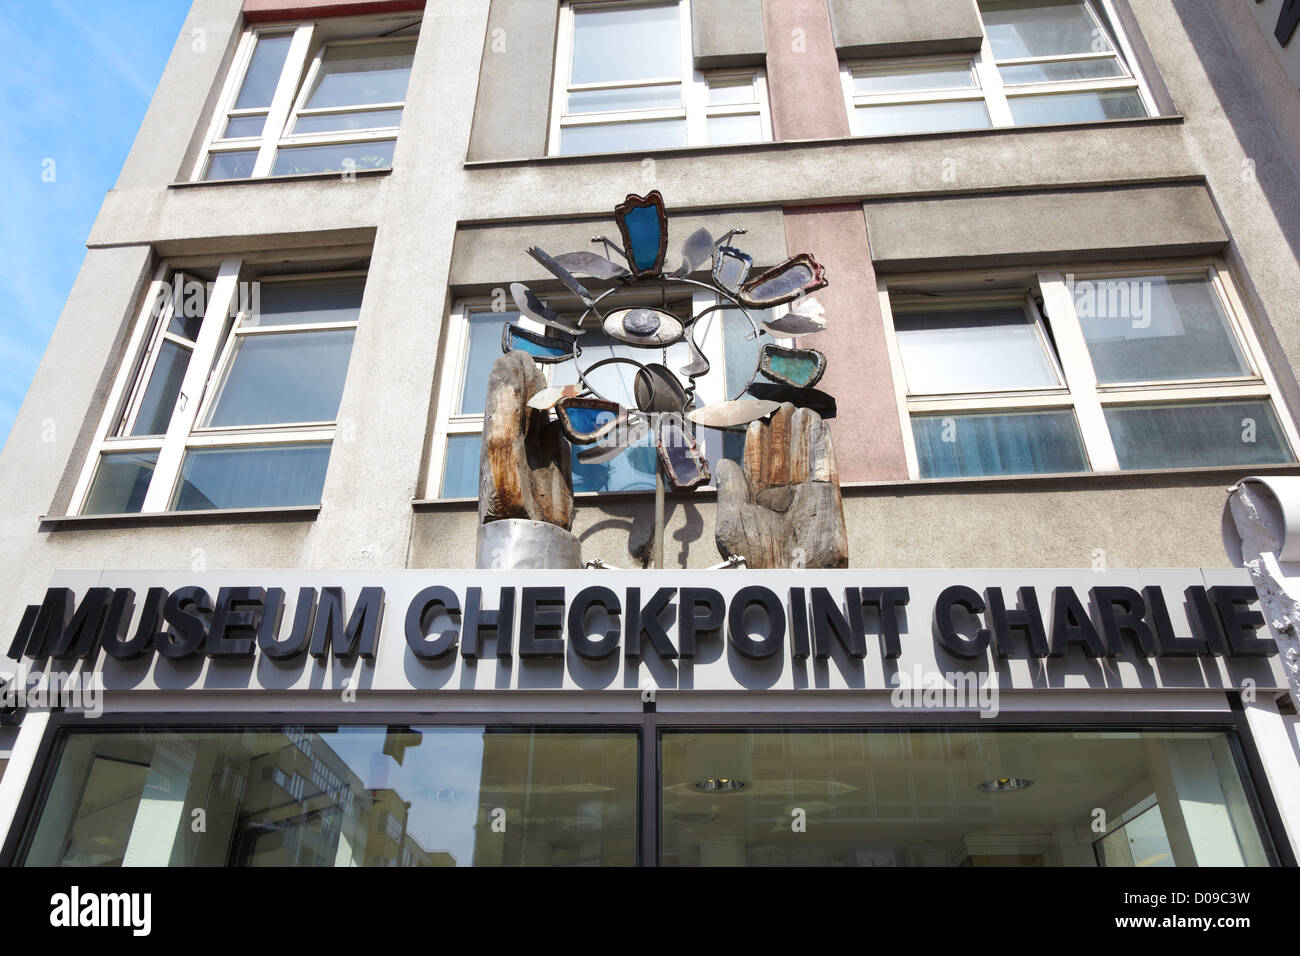 Museum Checkpoint Charlie in Berlin - Stock Image